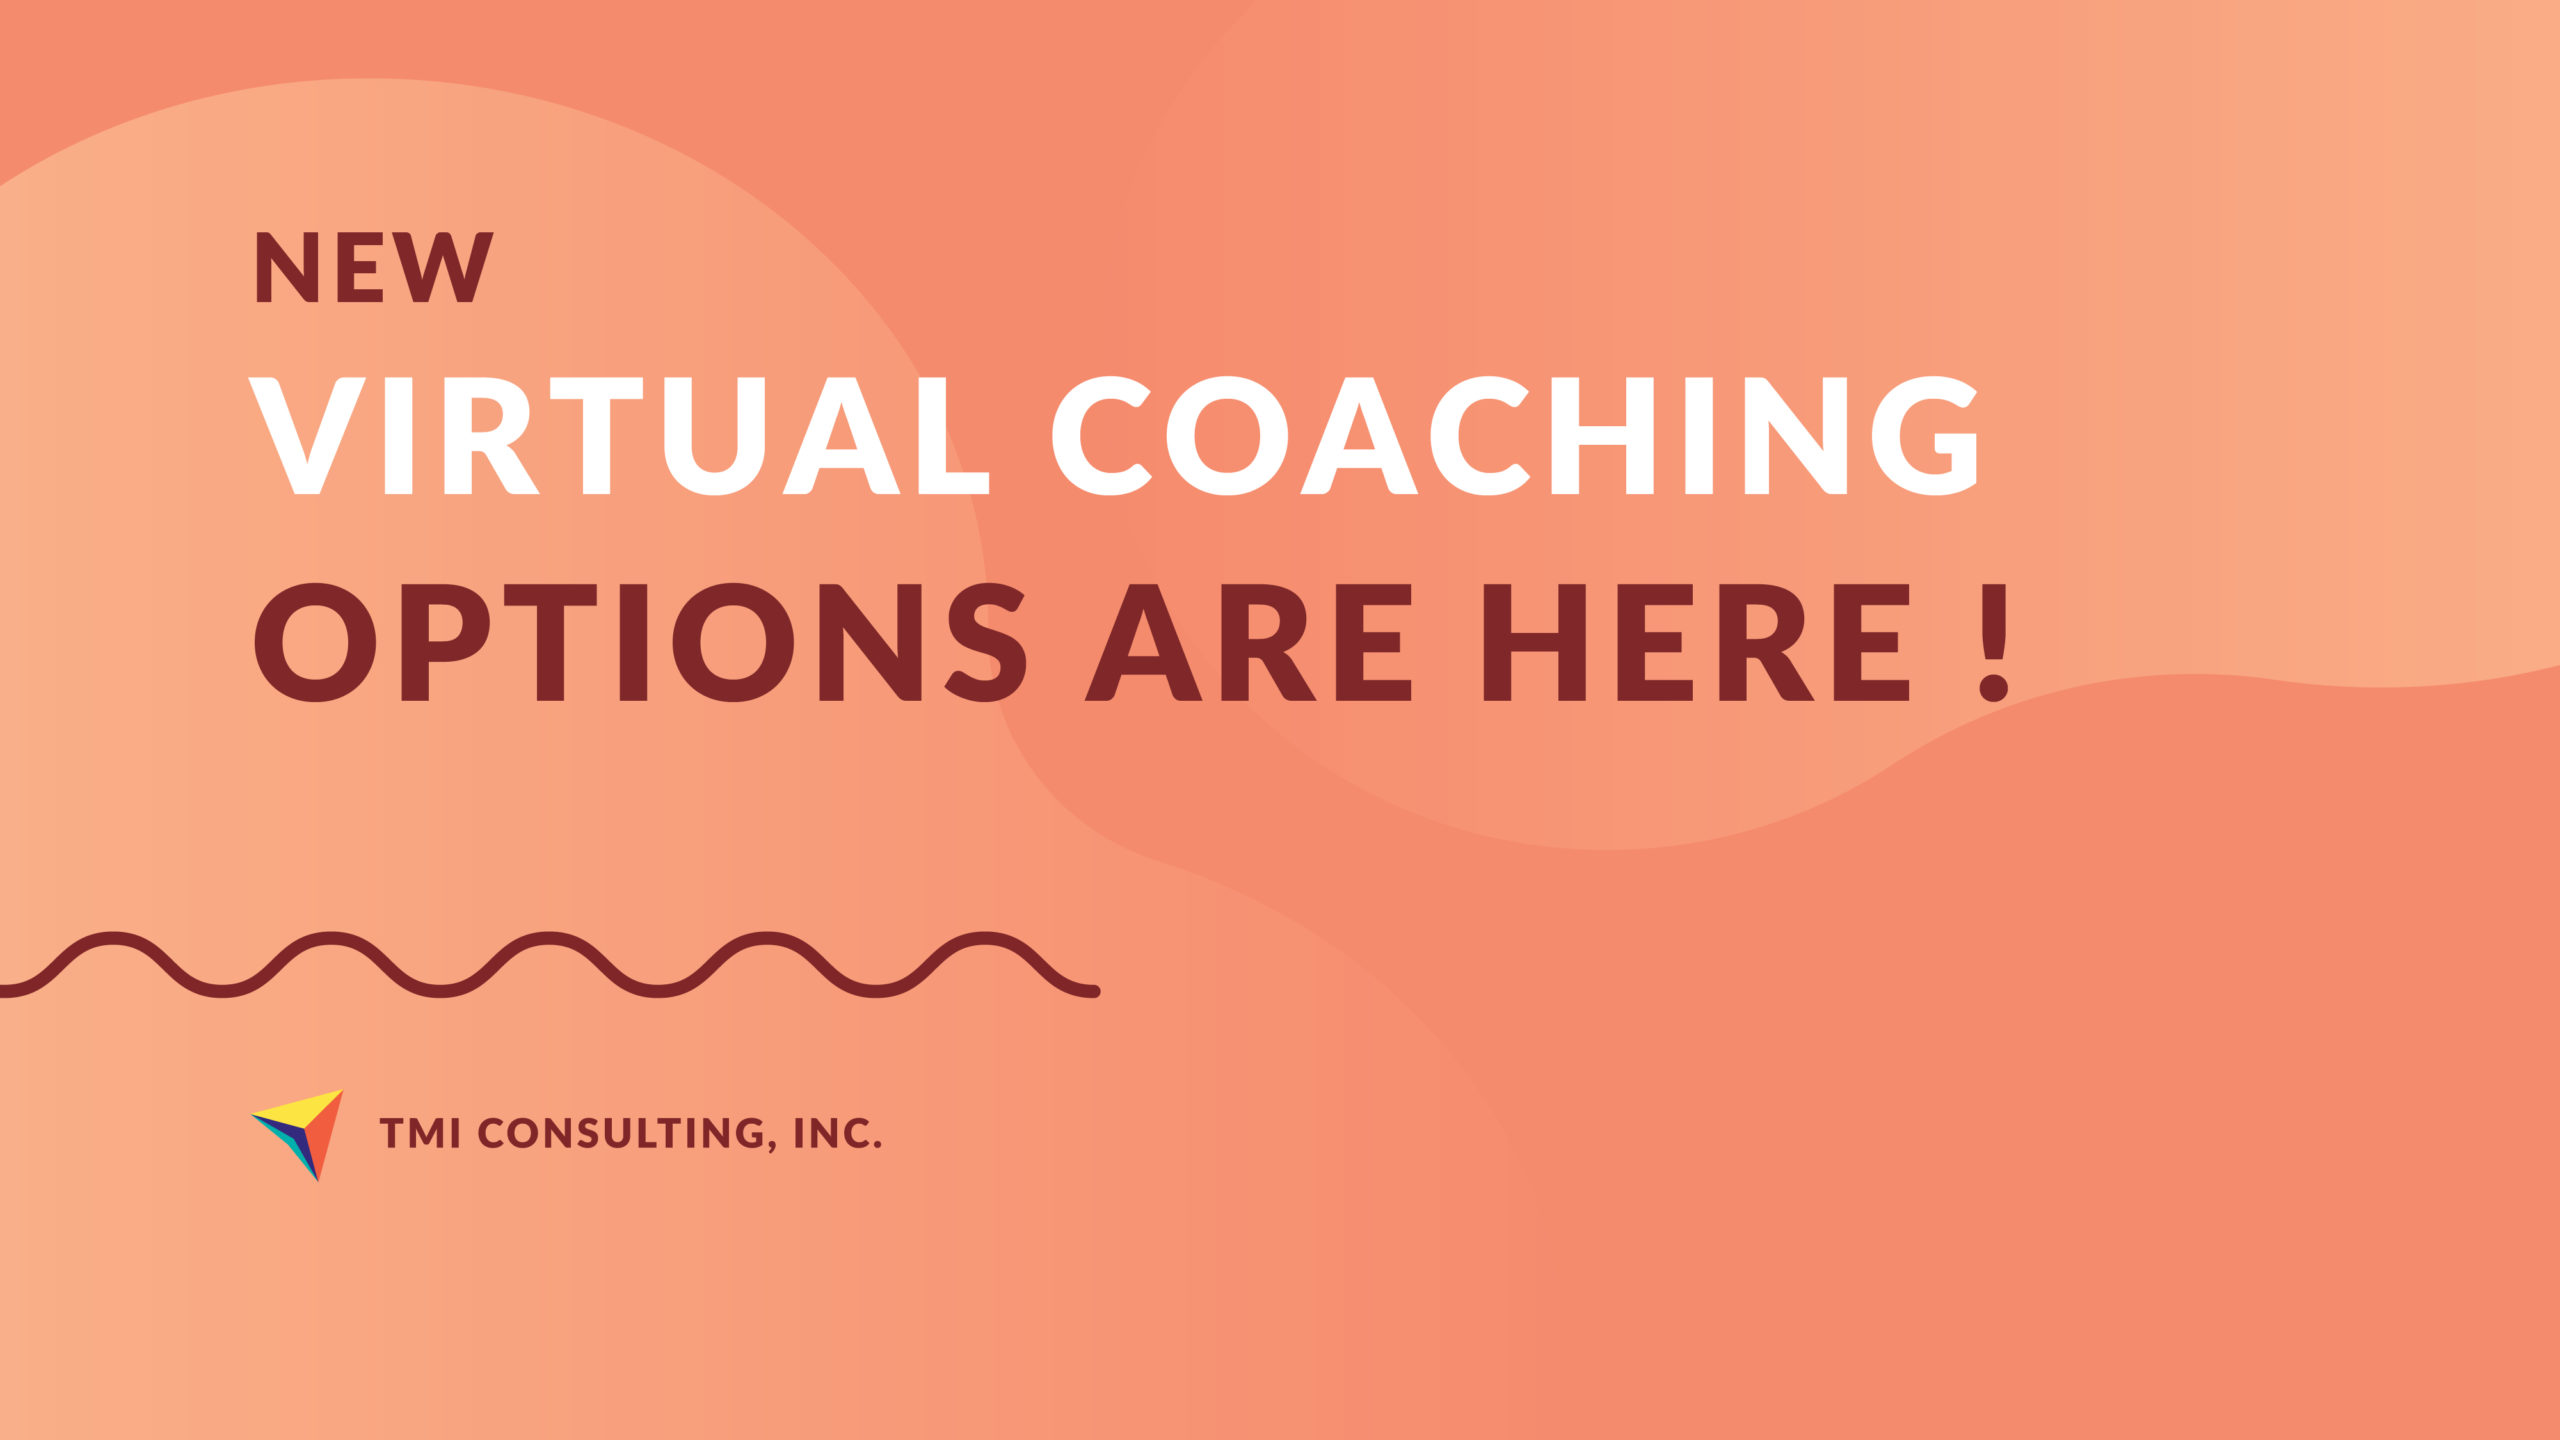 new virtual coaching options are here.